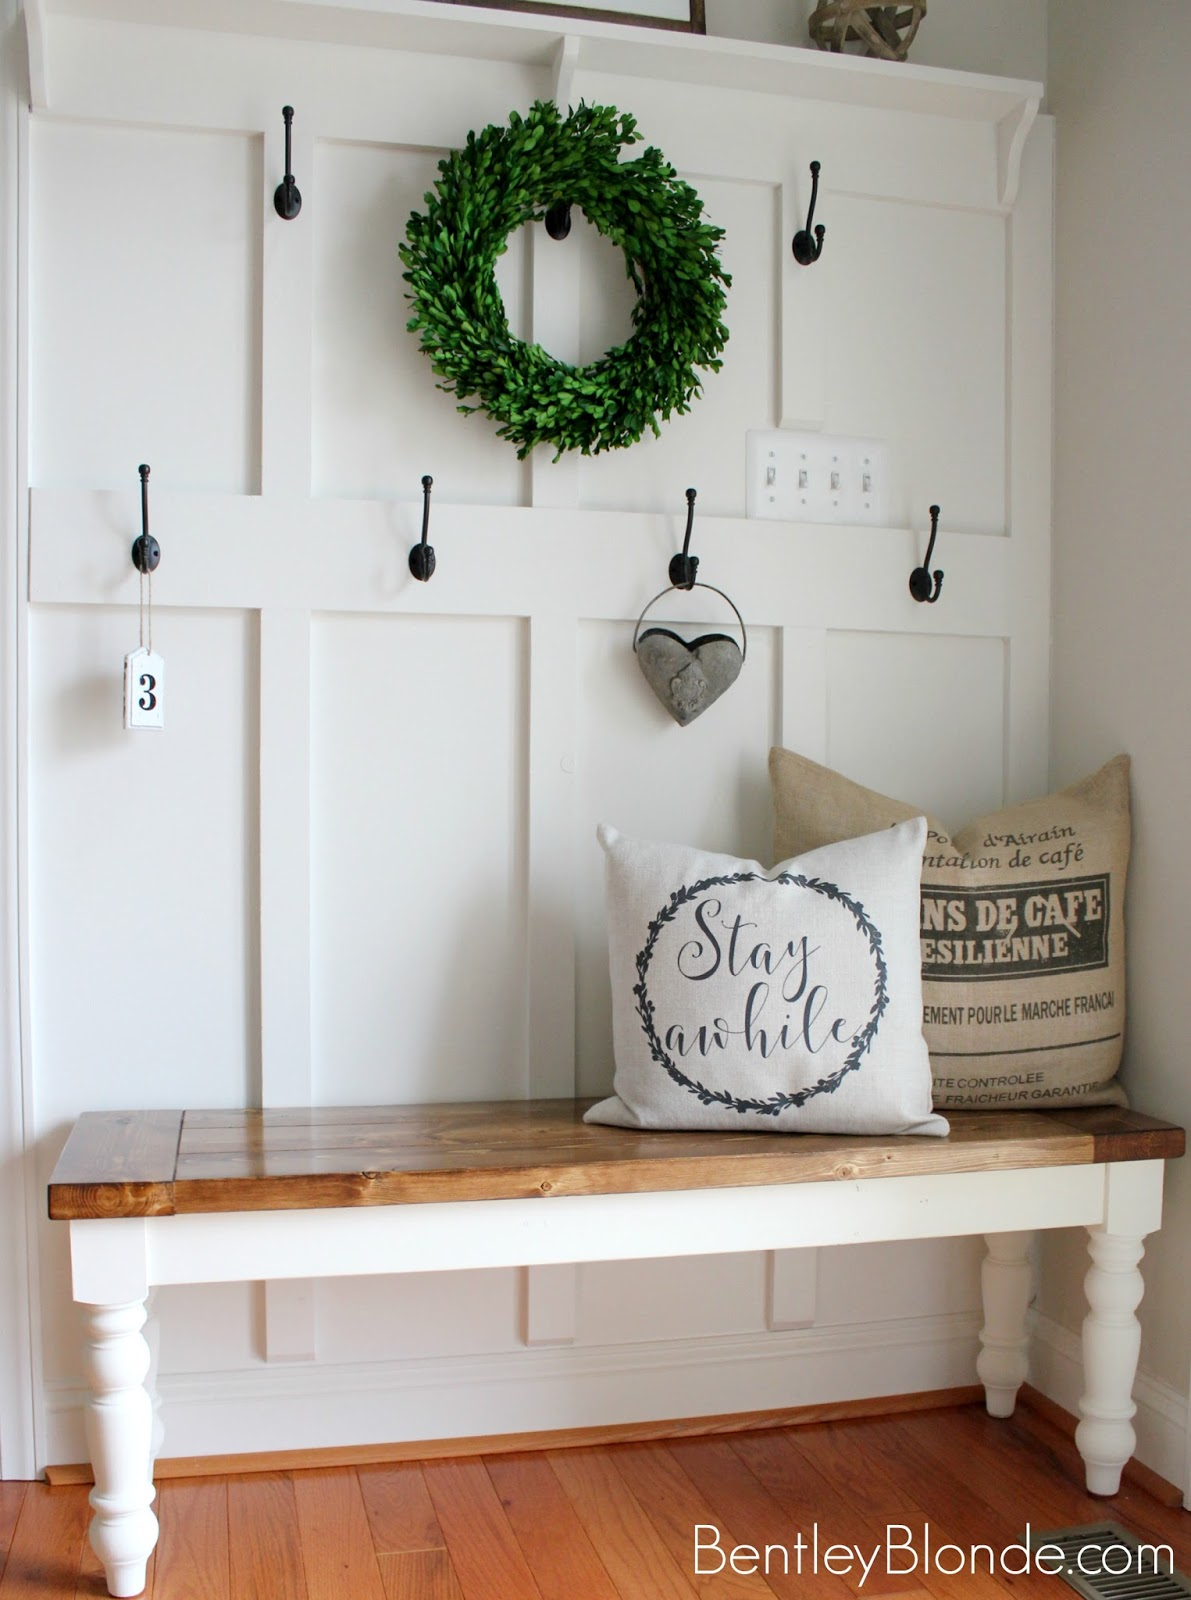 Bentleyblonde Diy Farmhouse Bench Tutorial Bentleyblonde